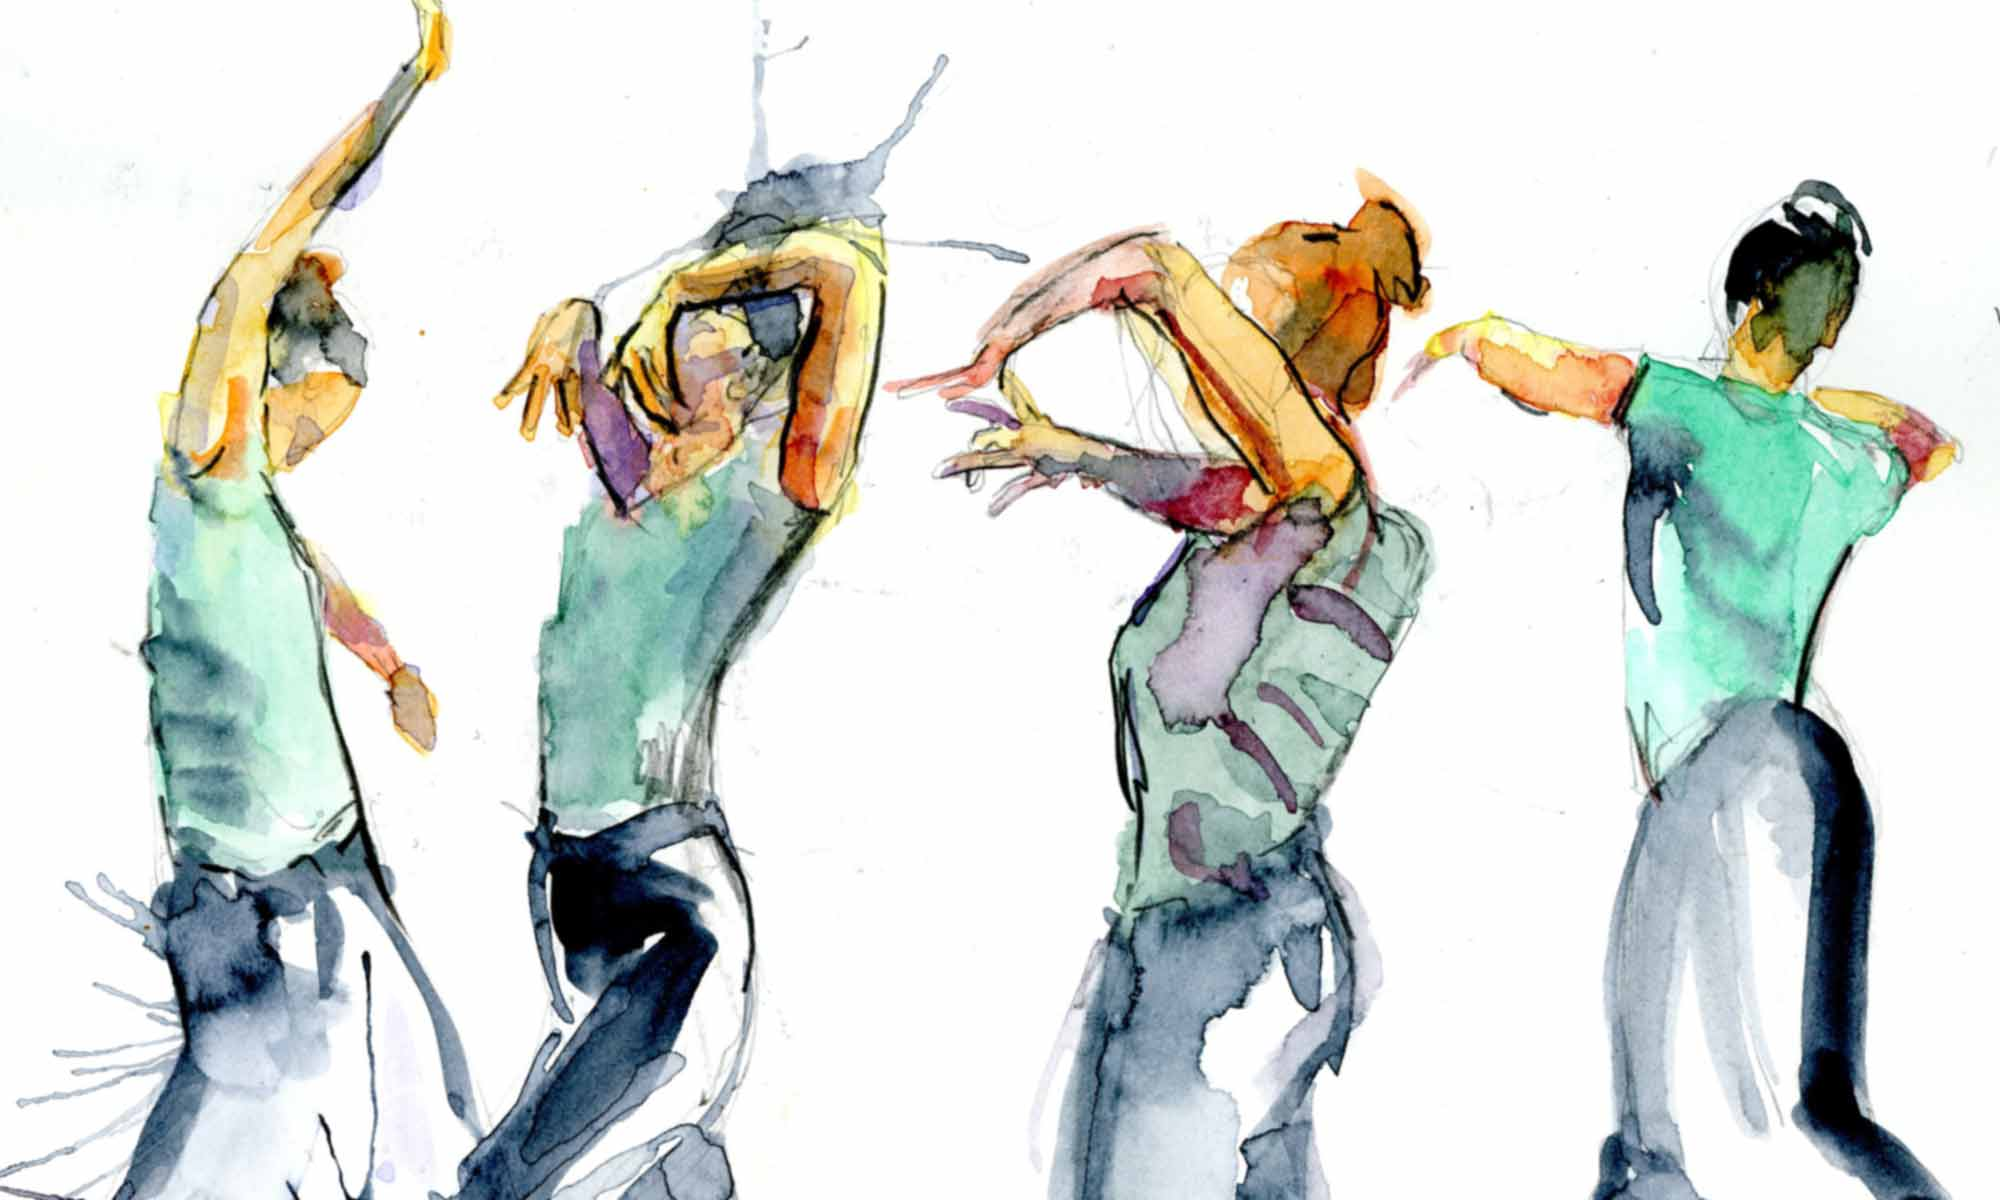 watercolour of flamenco dancer in different movements